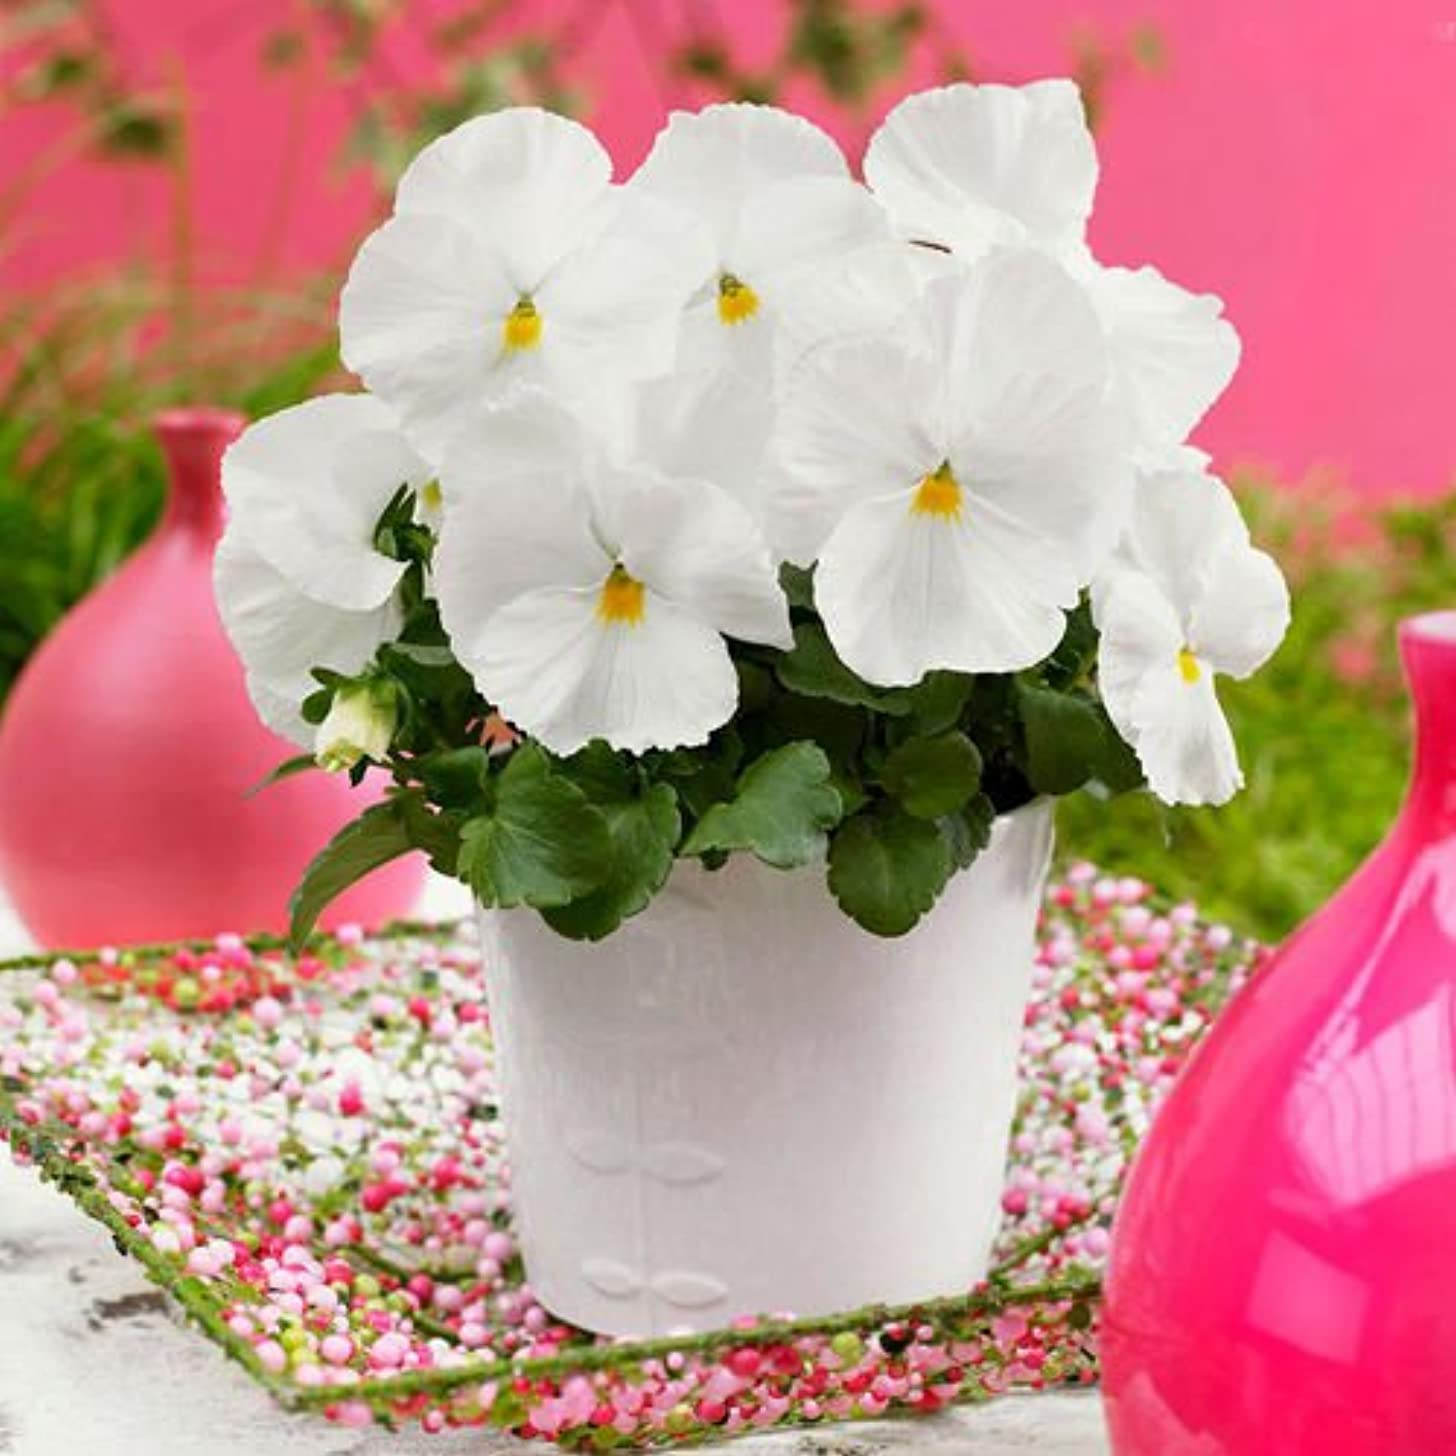 Portal Cool White Pansy Seeds 50 Seeds Viola Tricolor Herb Trinity Flower Garden Seeds A087